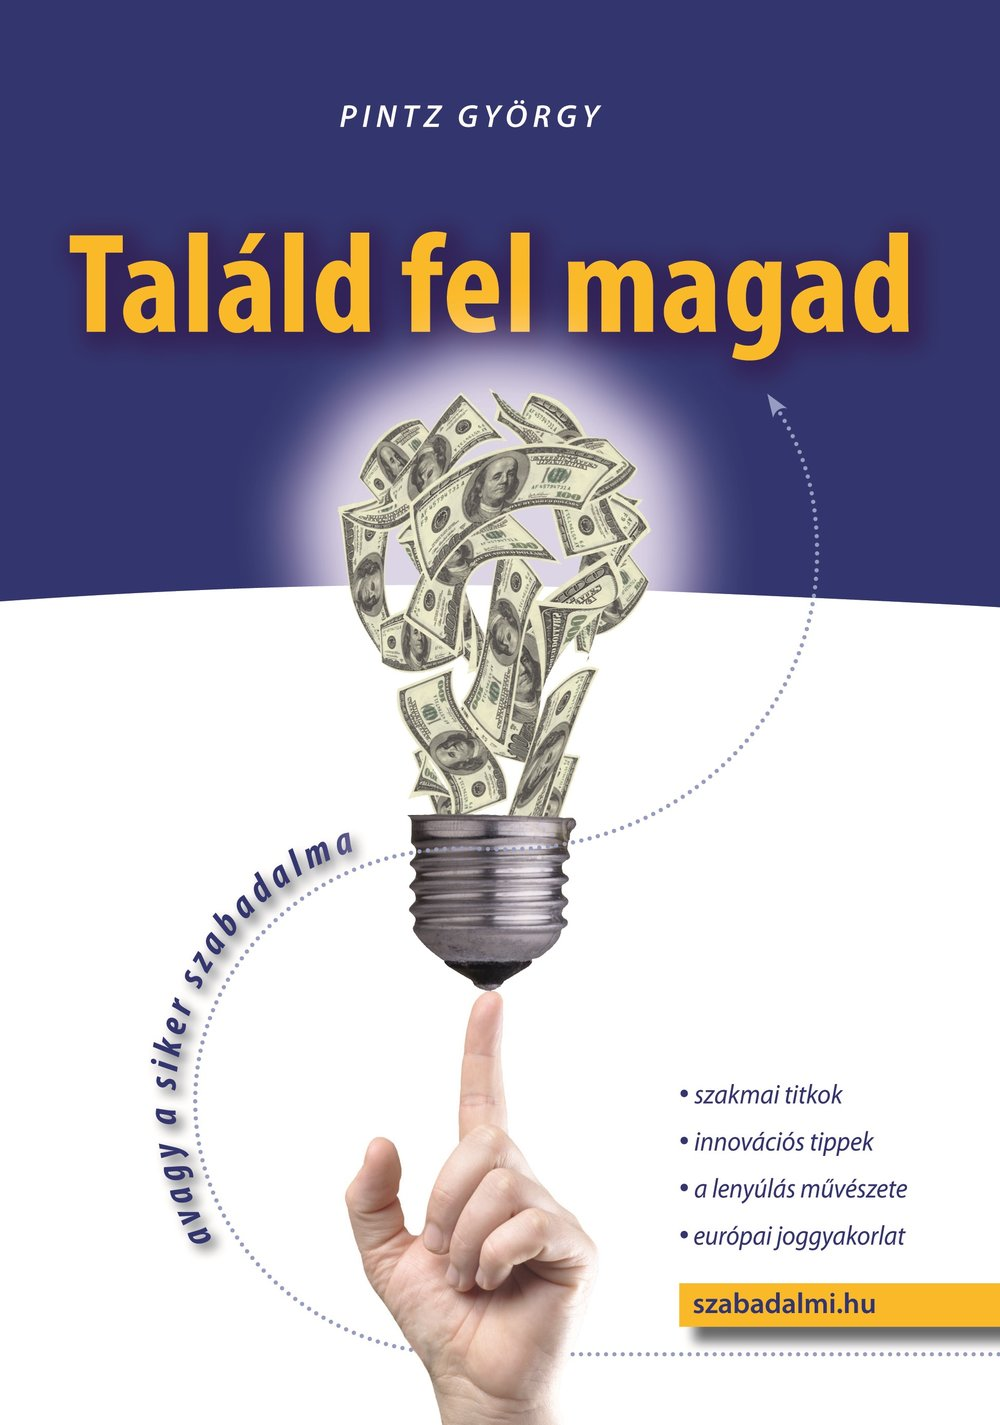 The book about patents in Hungarian, published in 2014.